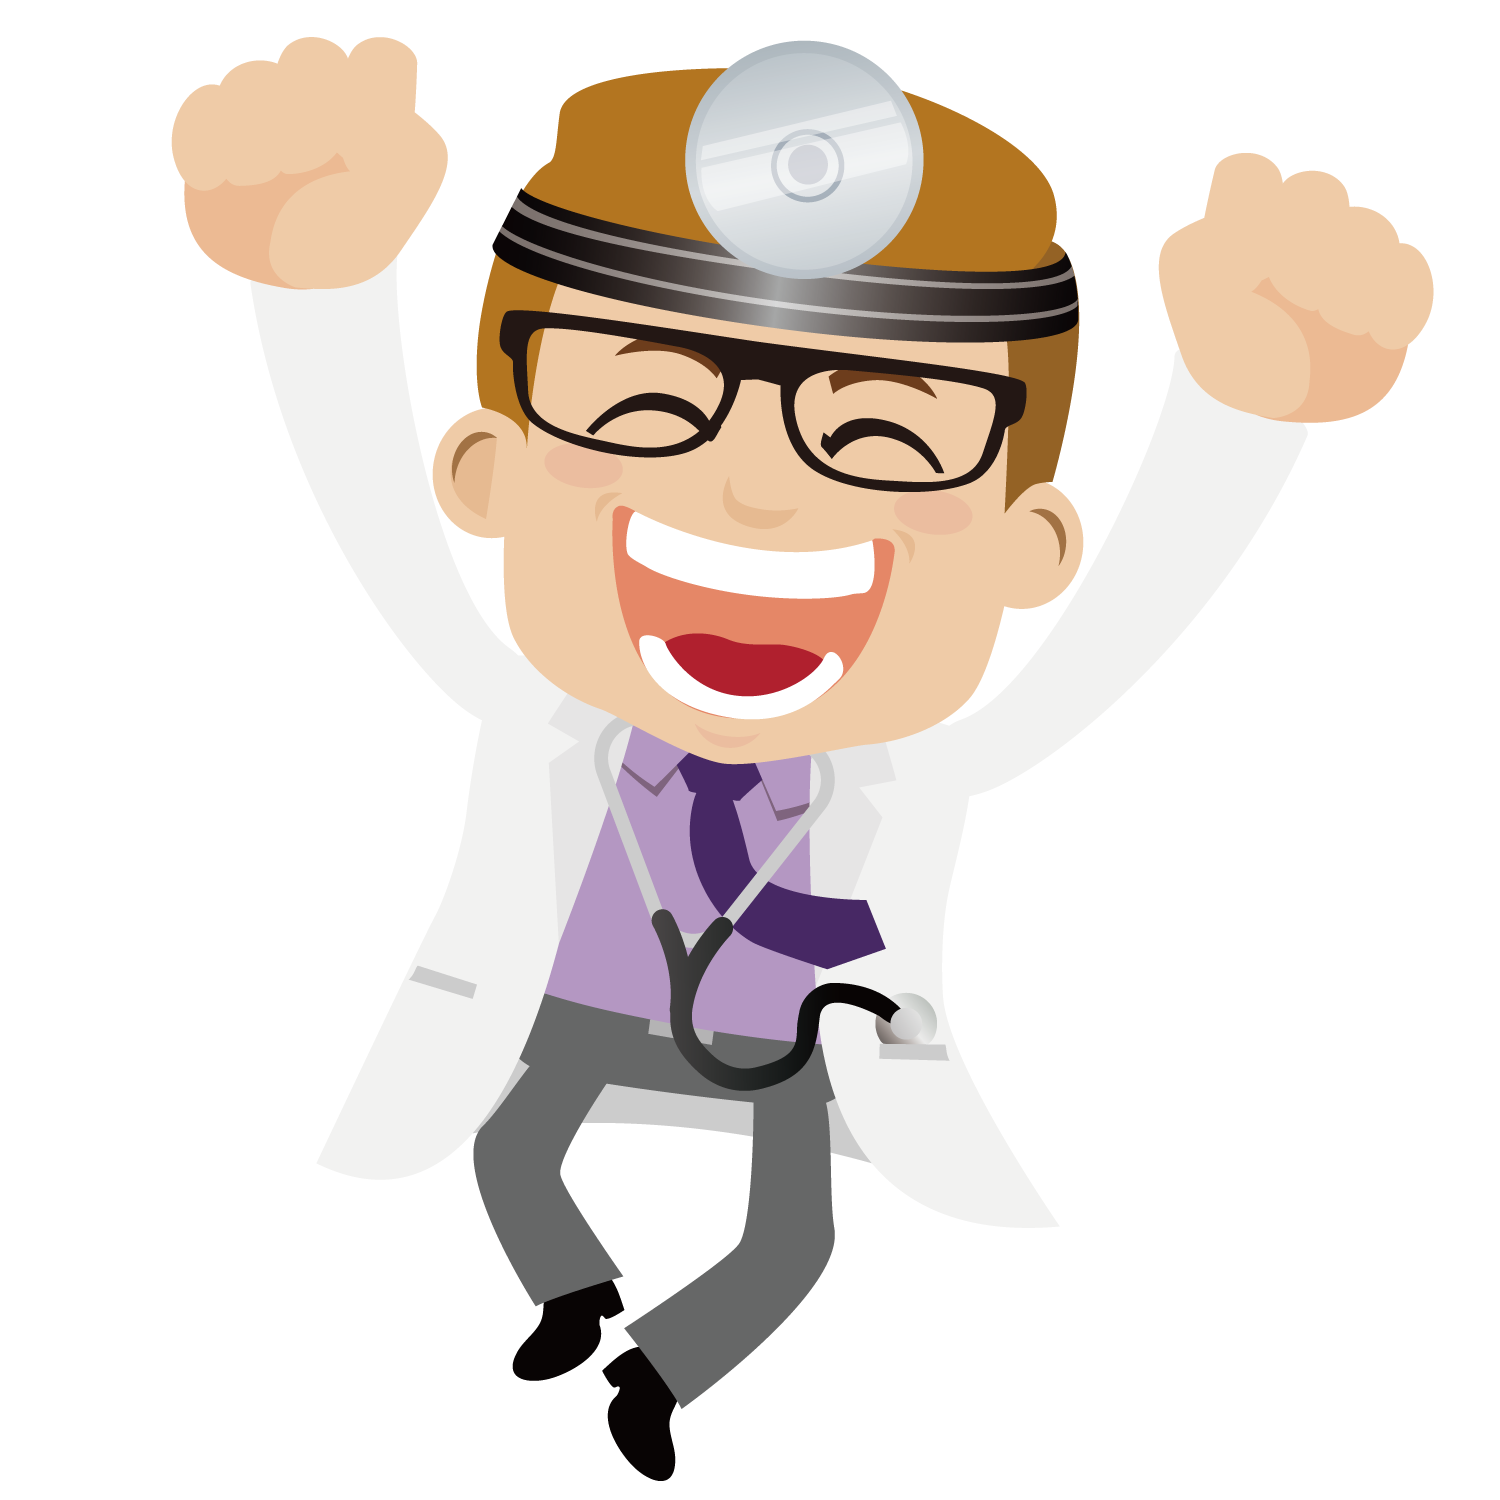 Physician cartoon clip art. Excited clipart excitment